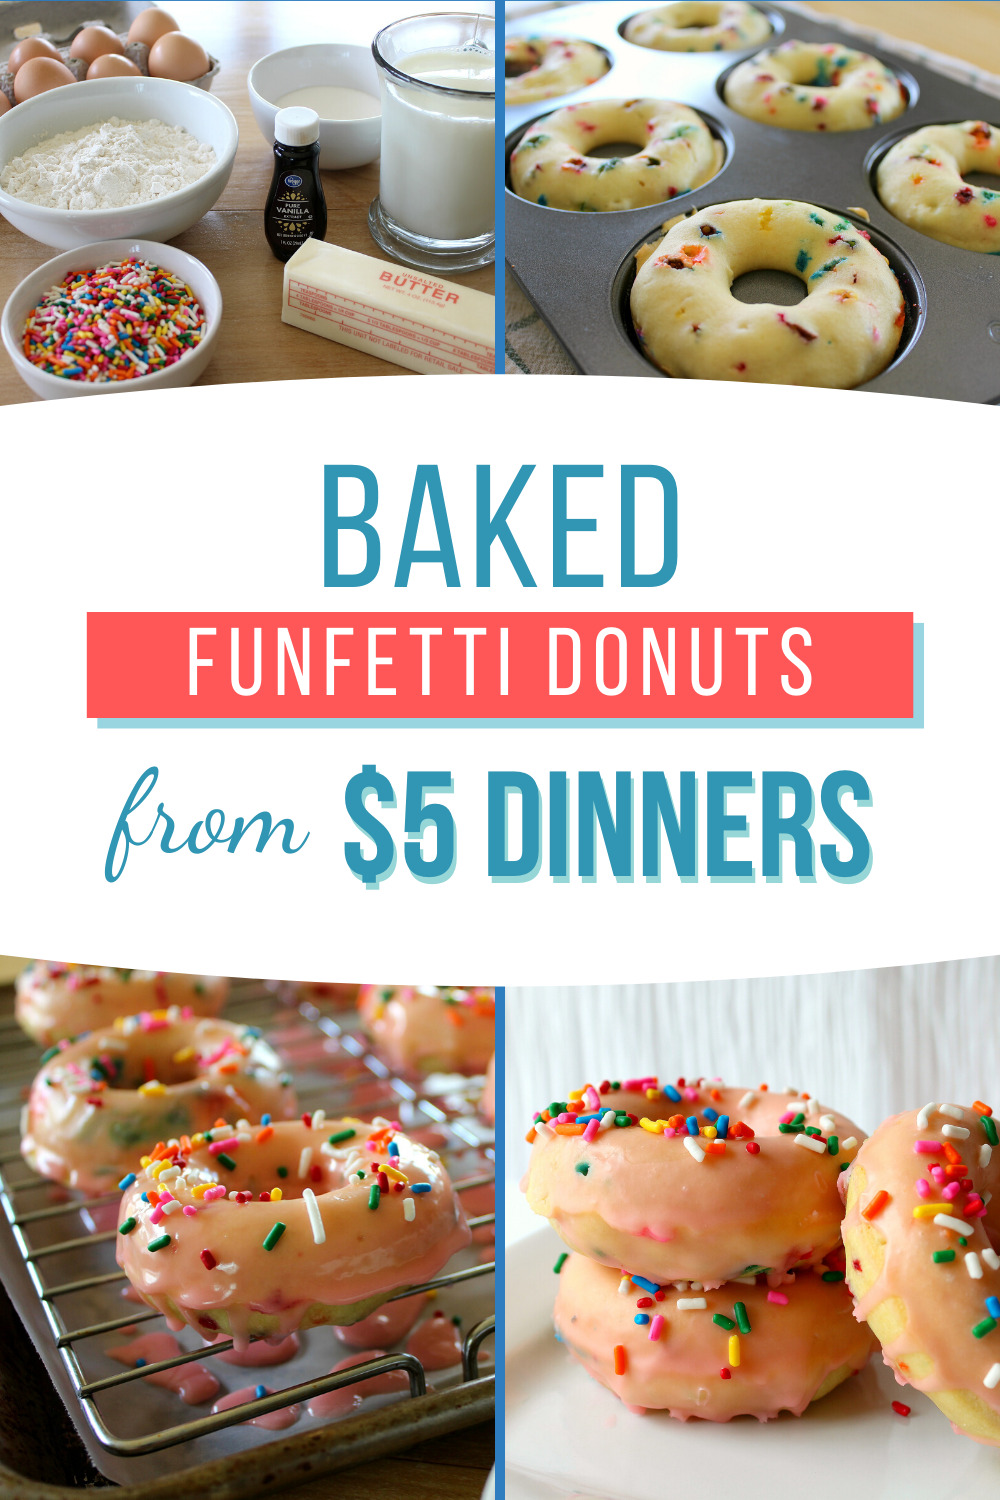 How to Bake Donuts